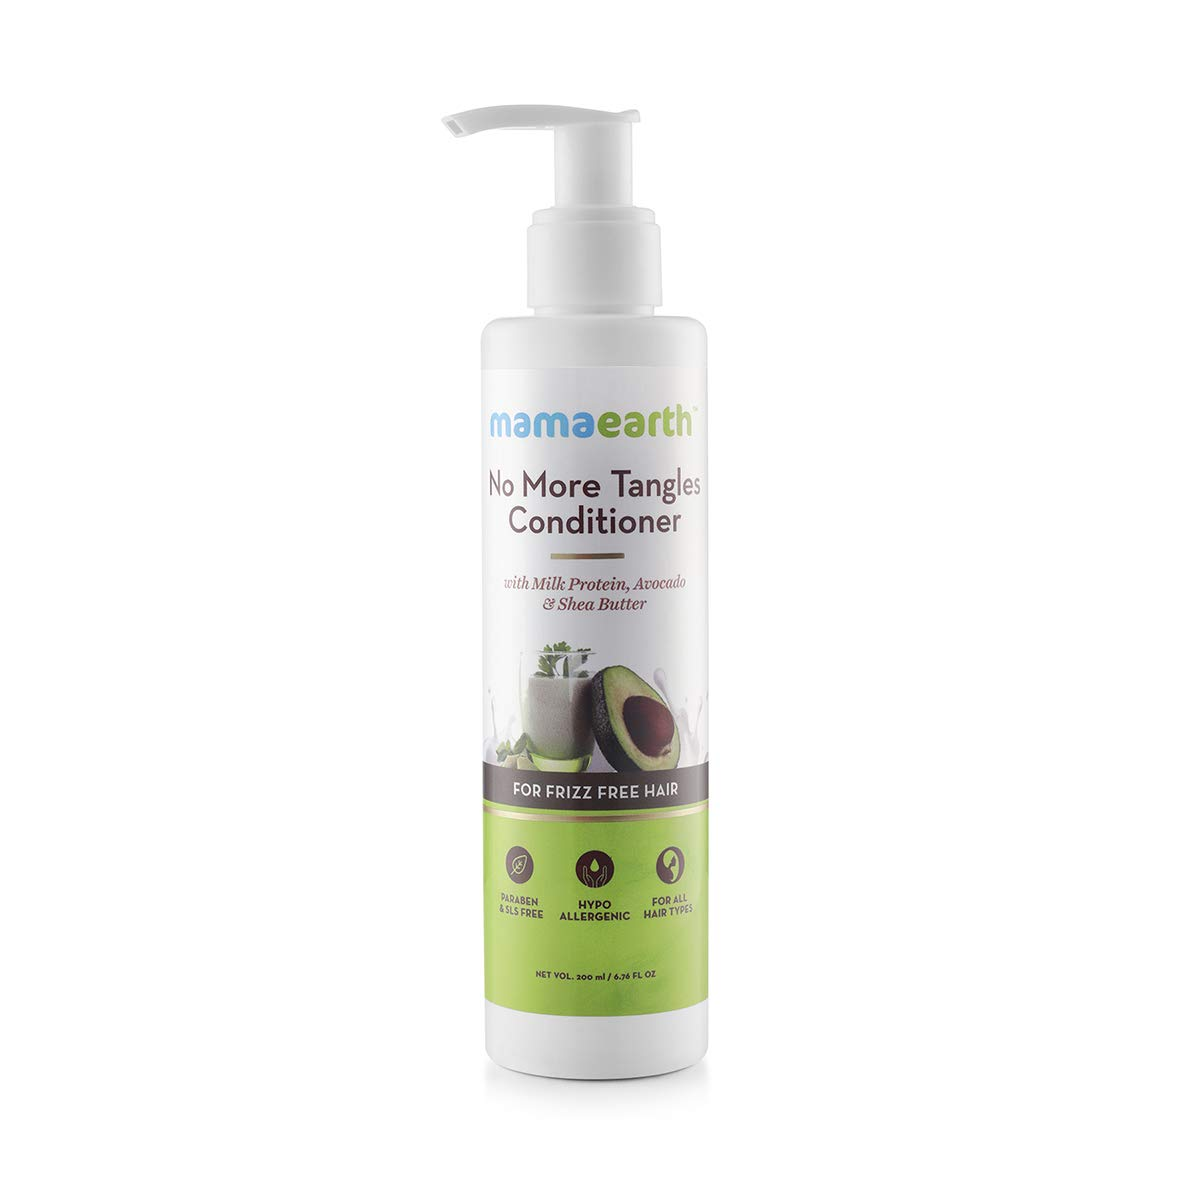 Mamaearth No More Tangles Hair Conditioner